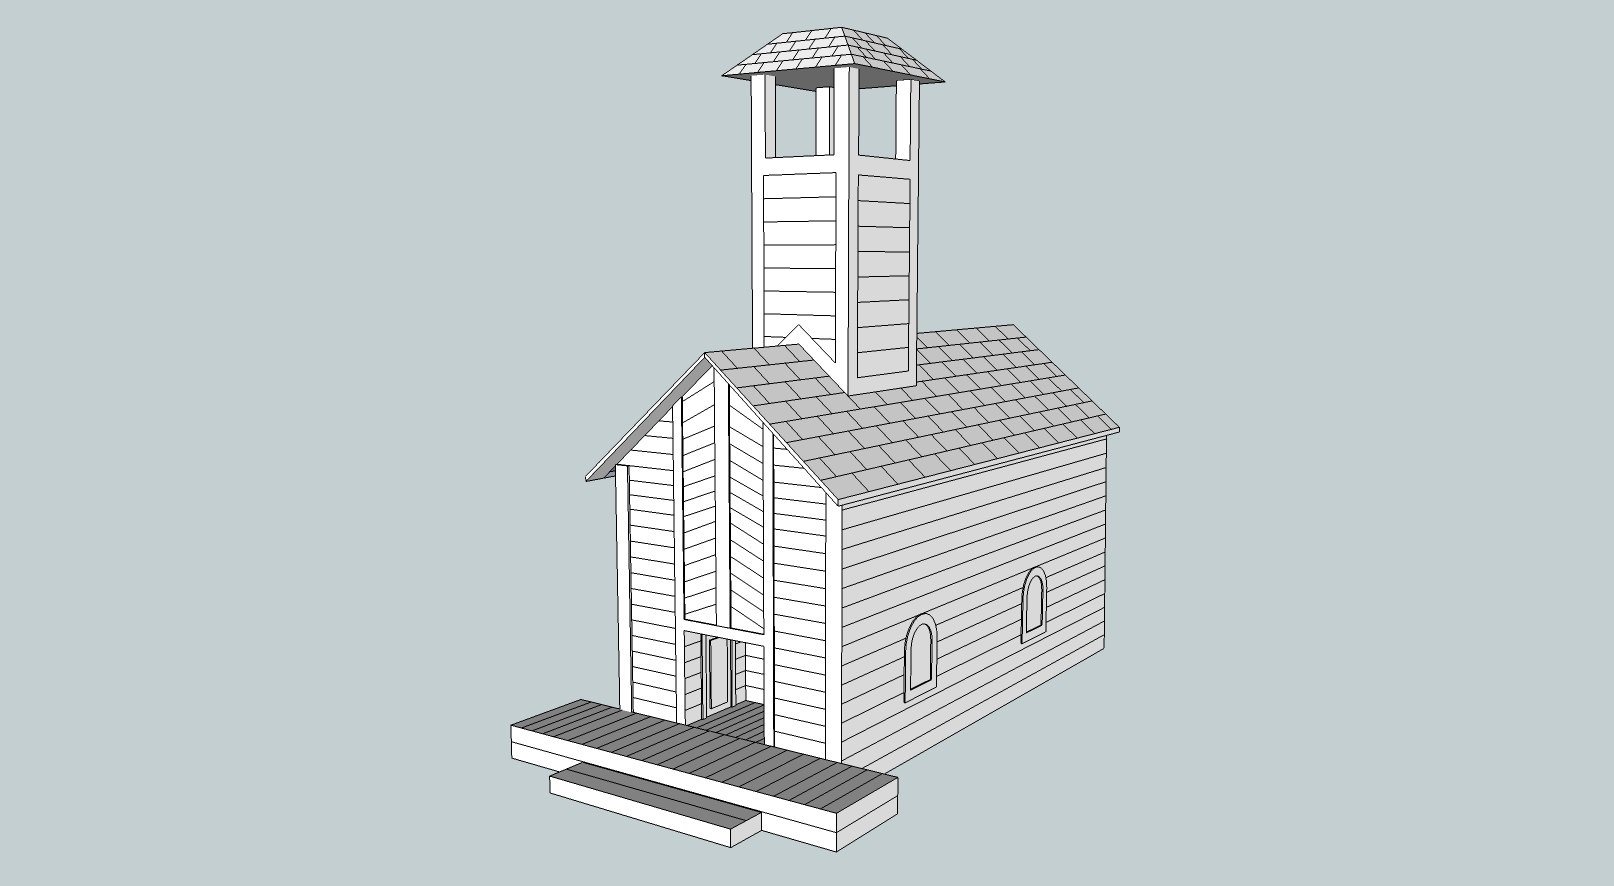 church 9 50 per 1 no charge for pitched roof